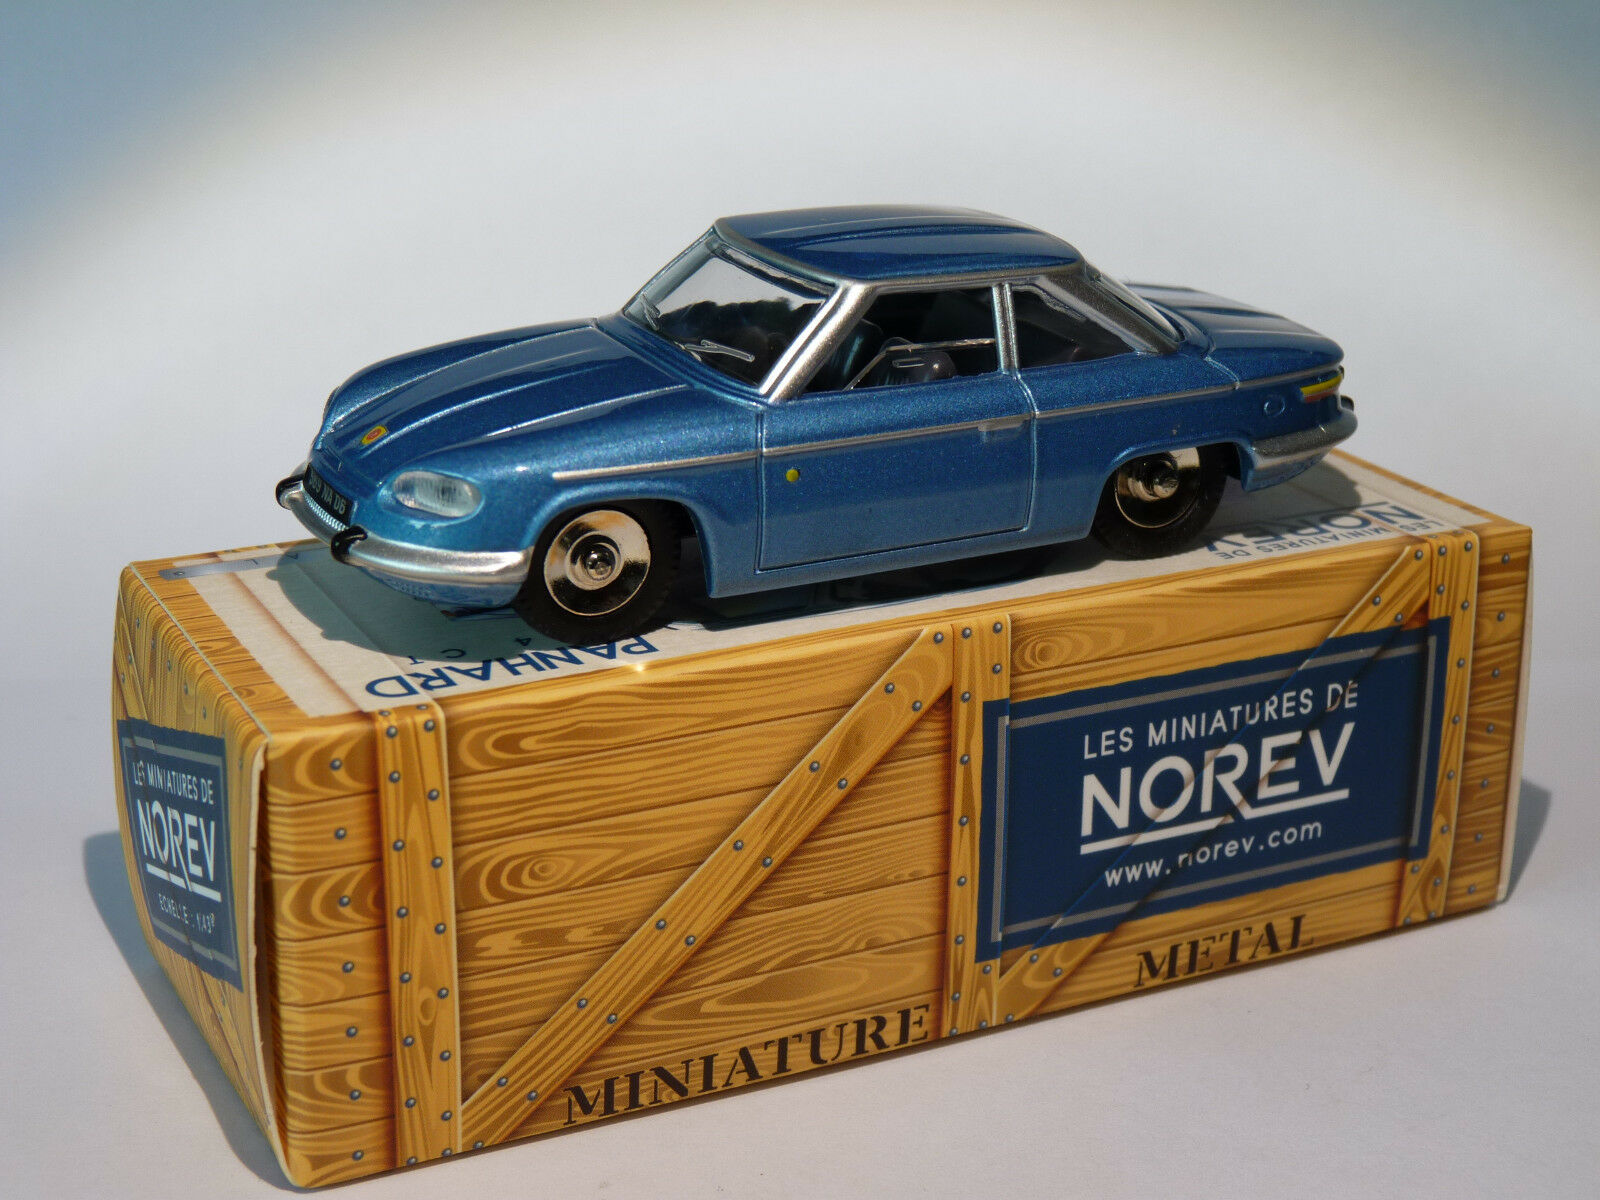 Panhard 24 CT at the 1 43 of norev   design as dinky toys solido cij